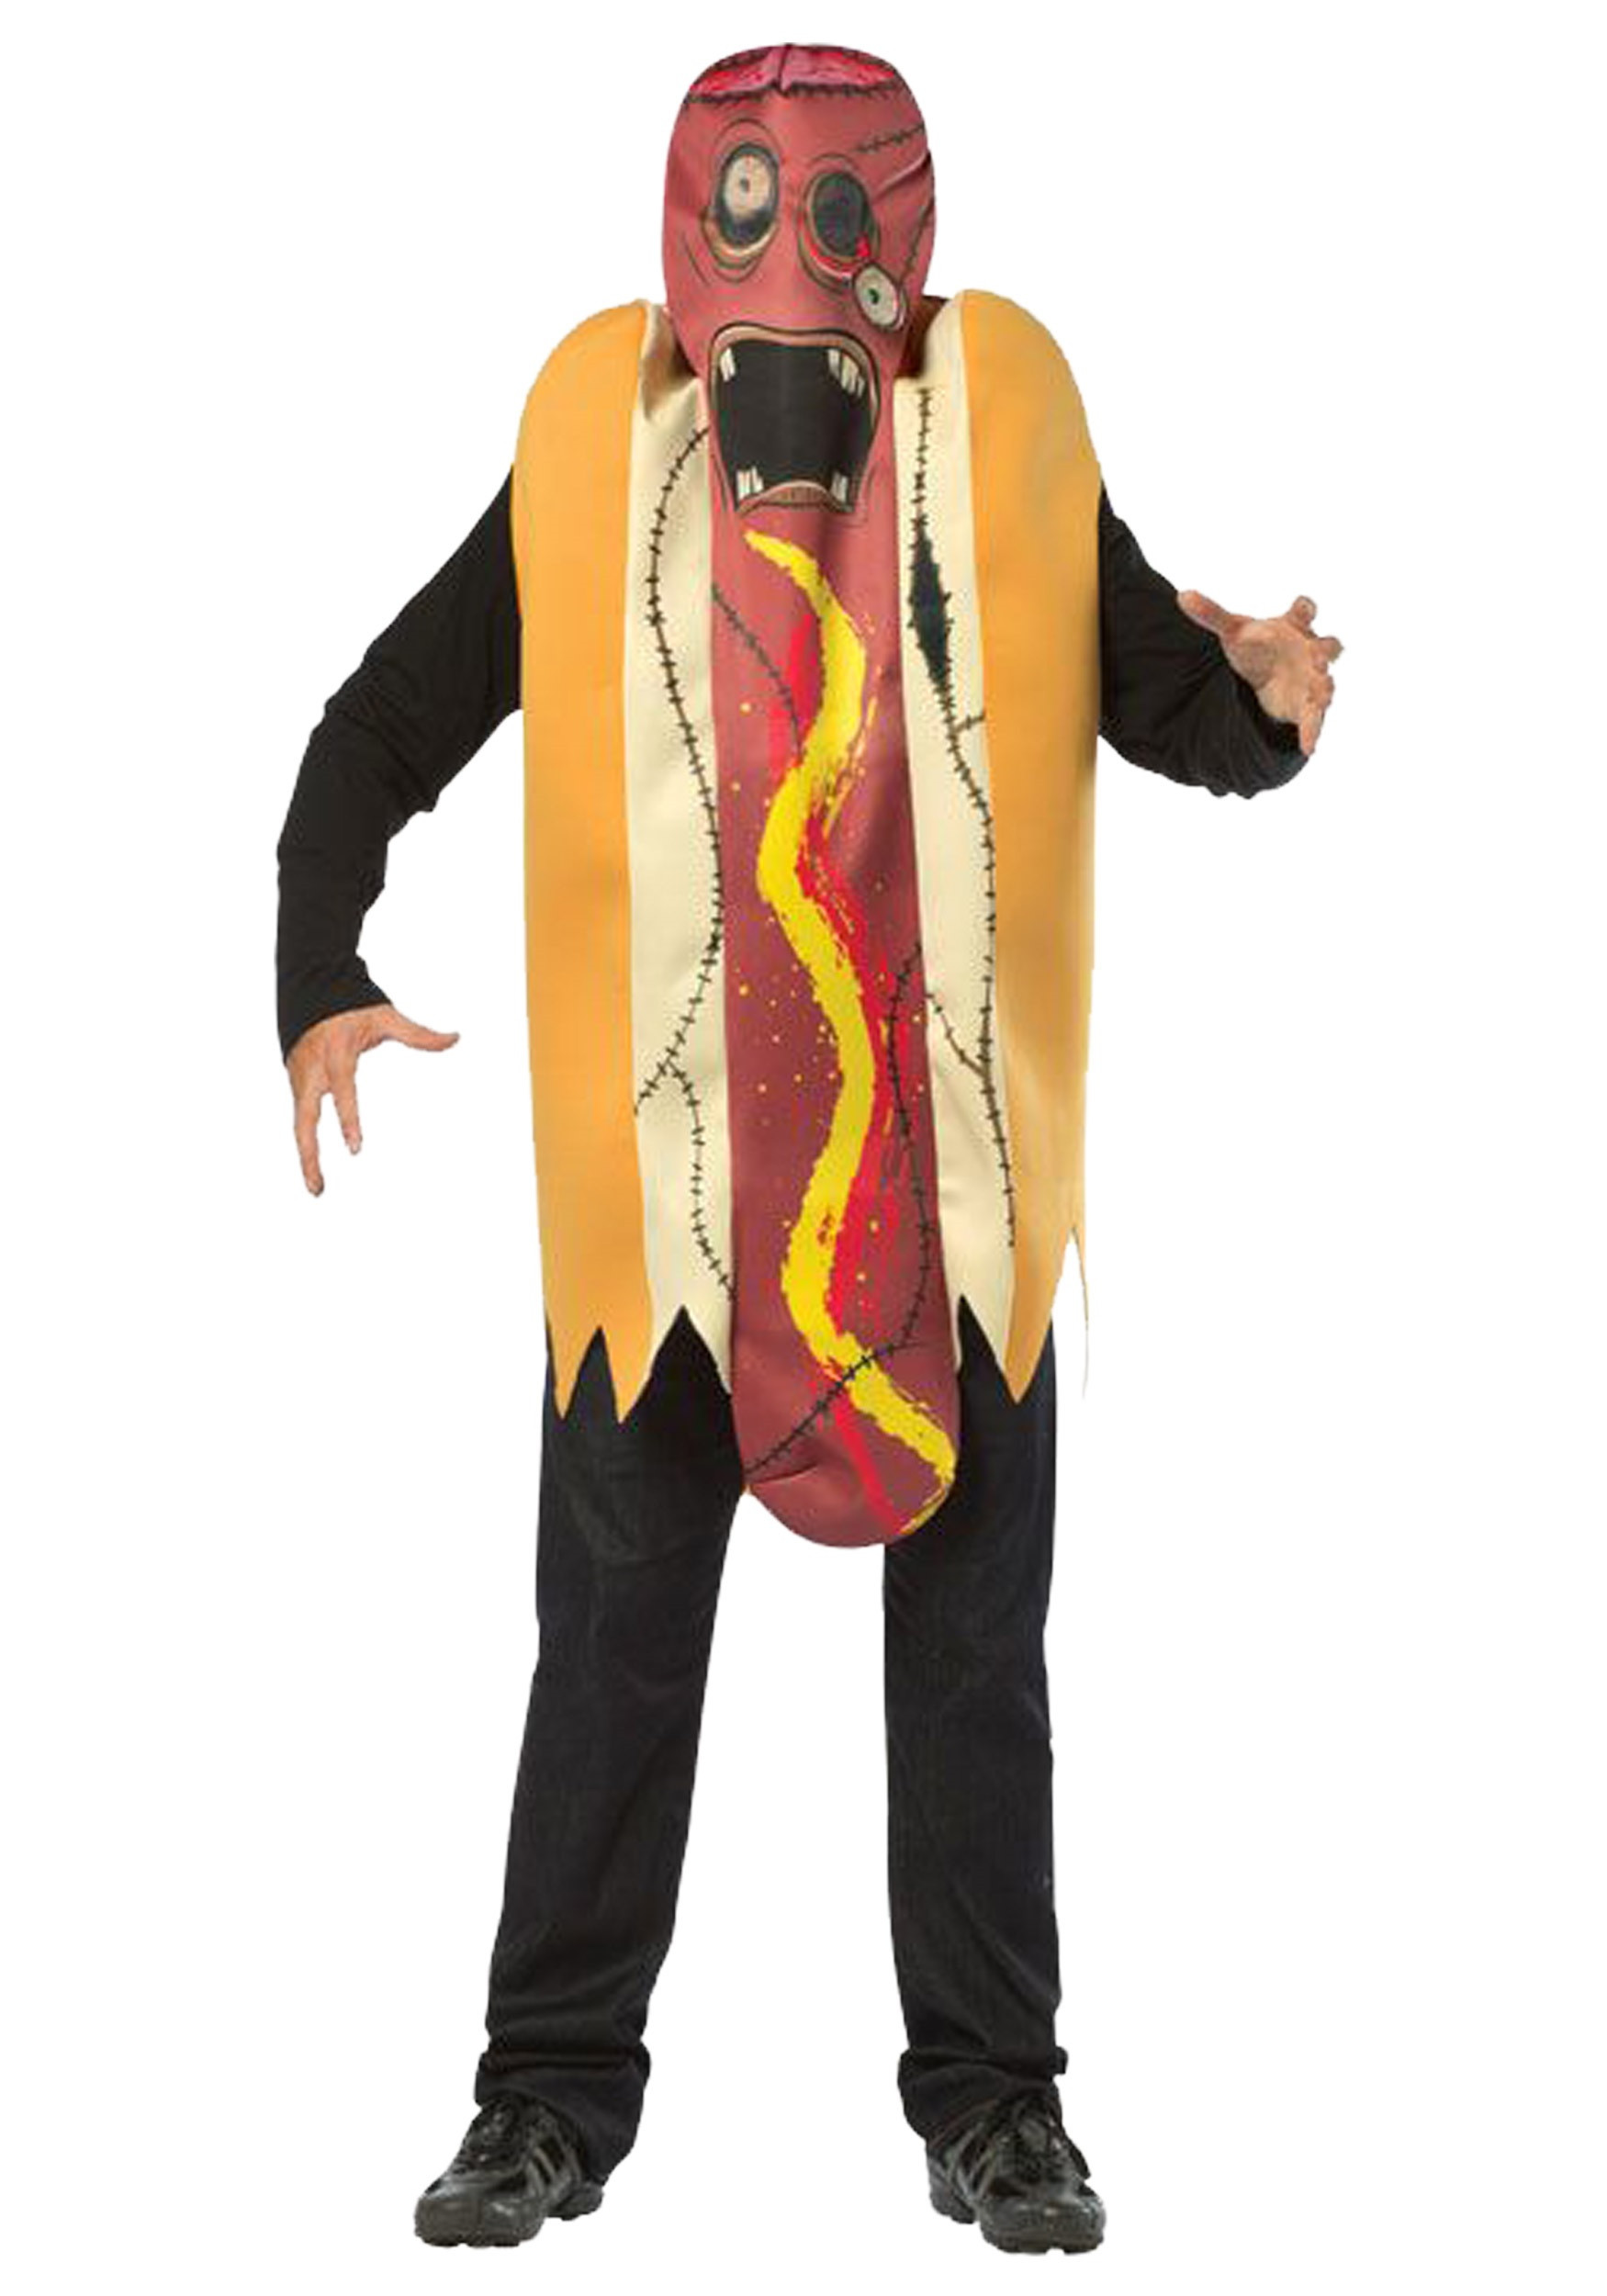 Hot Dog Halloween Costume For Dogs  Adult Zombie Hot Dog Costume